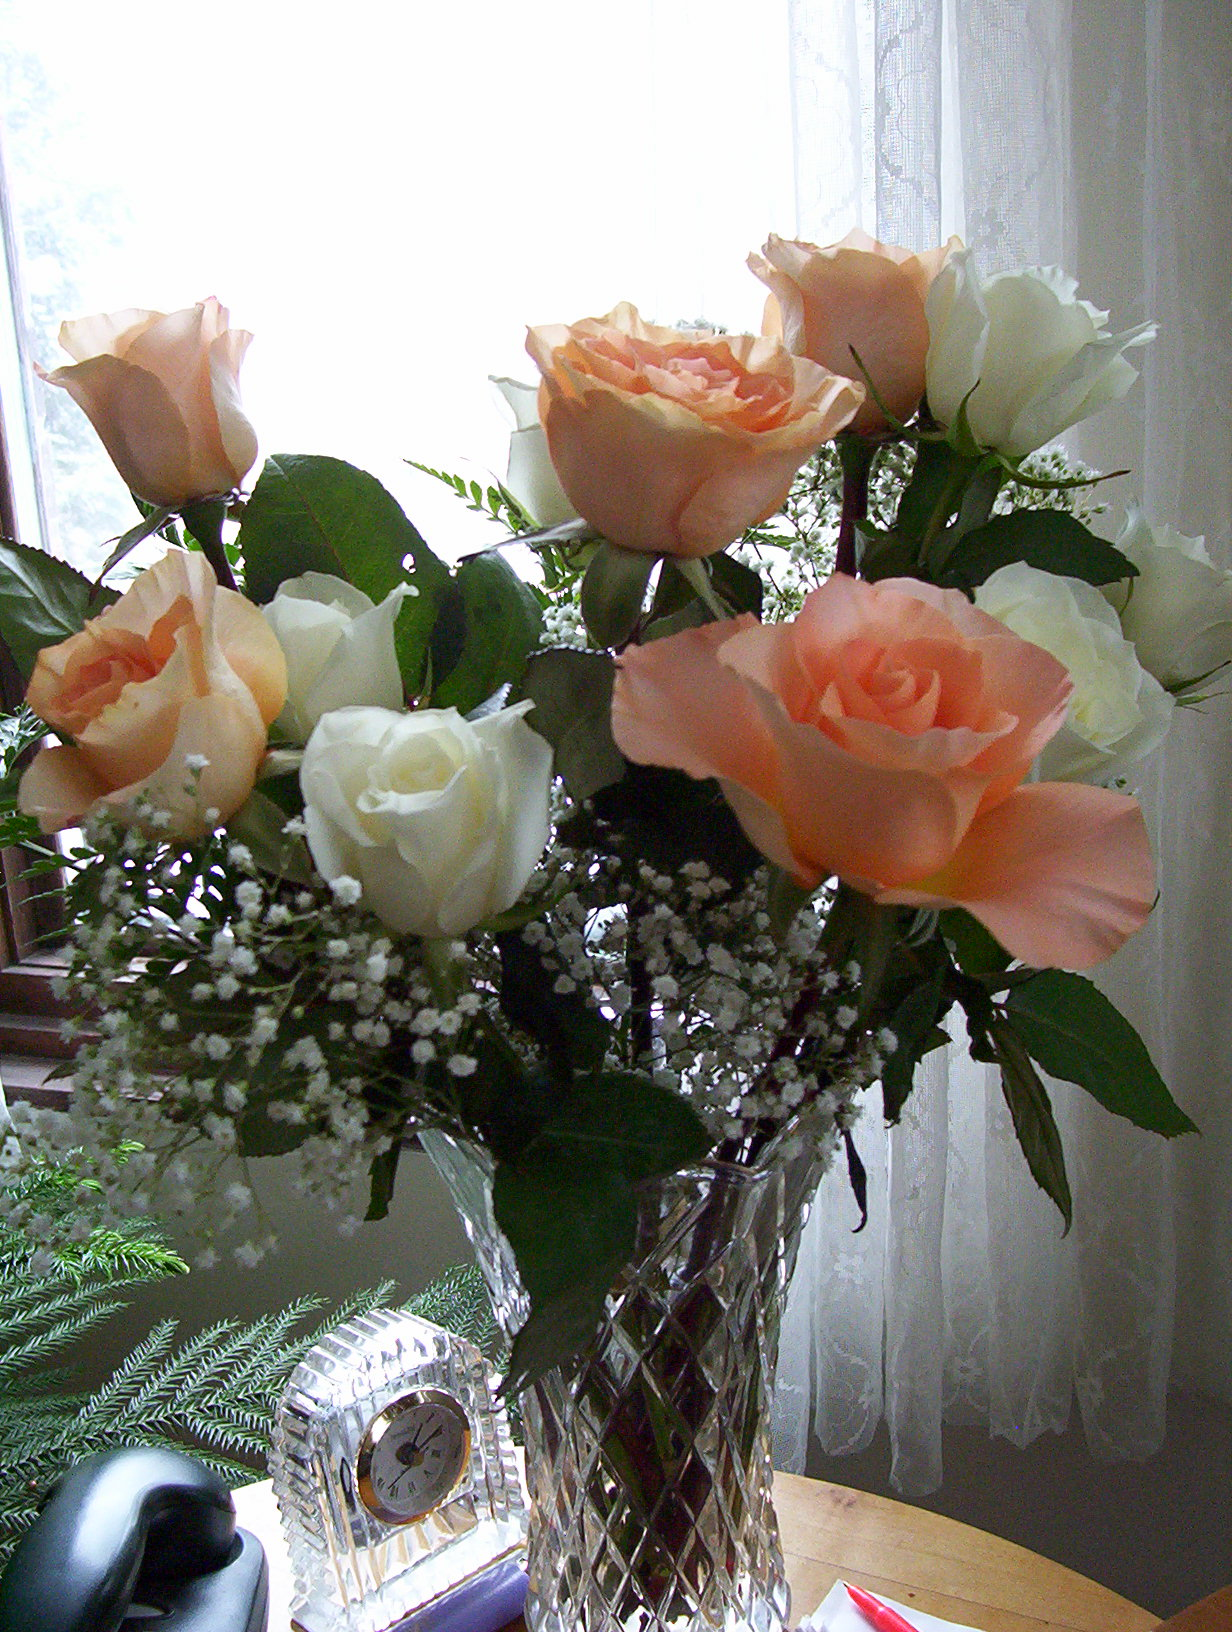 A glass vase with beautiful salmon -coloured roses